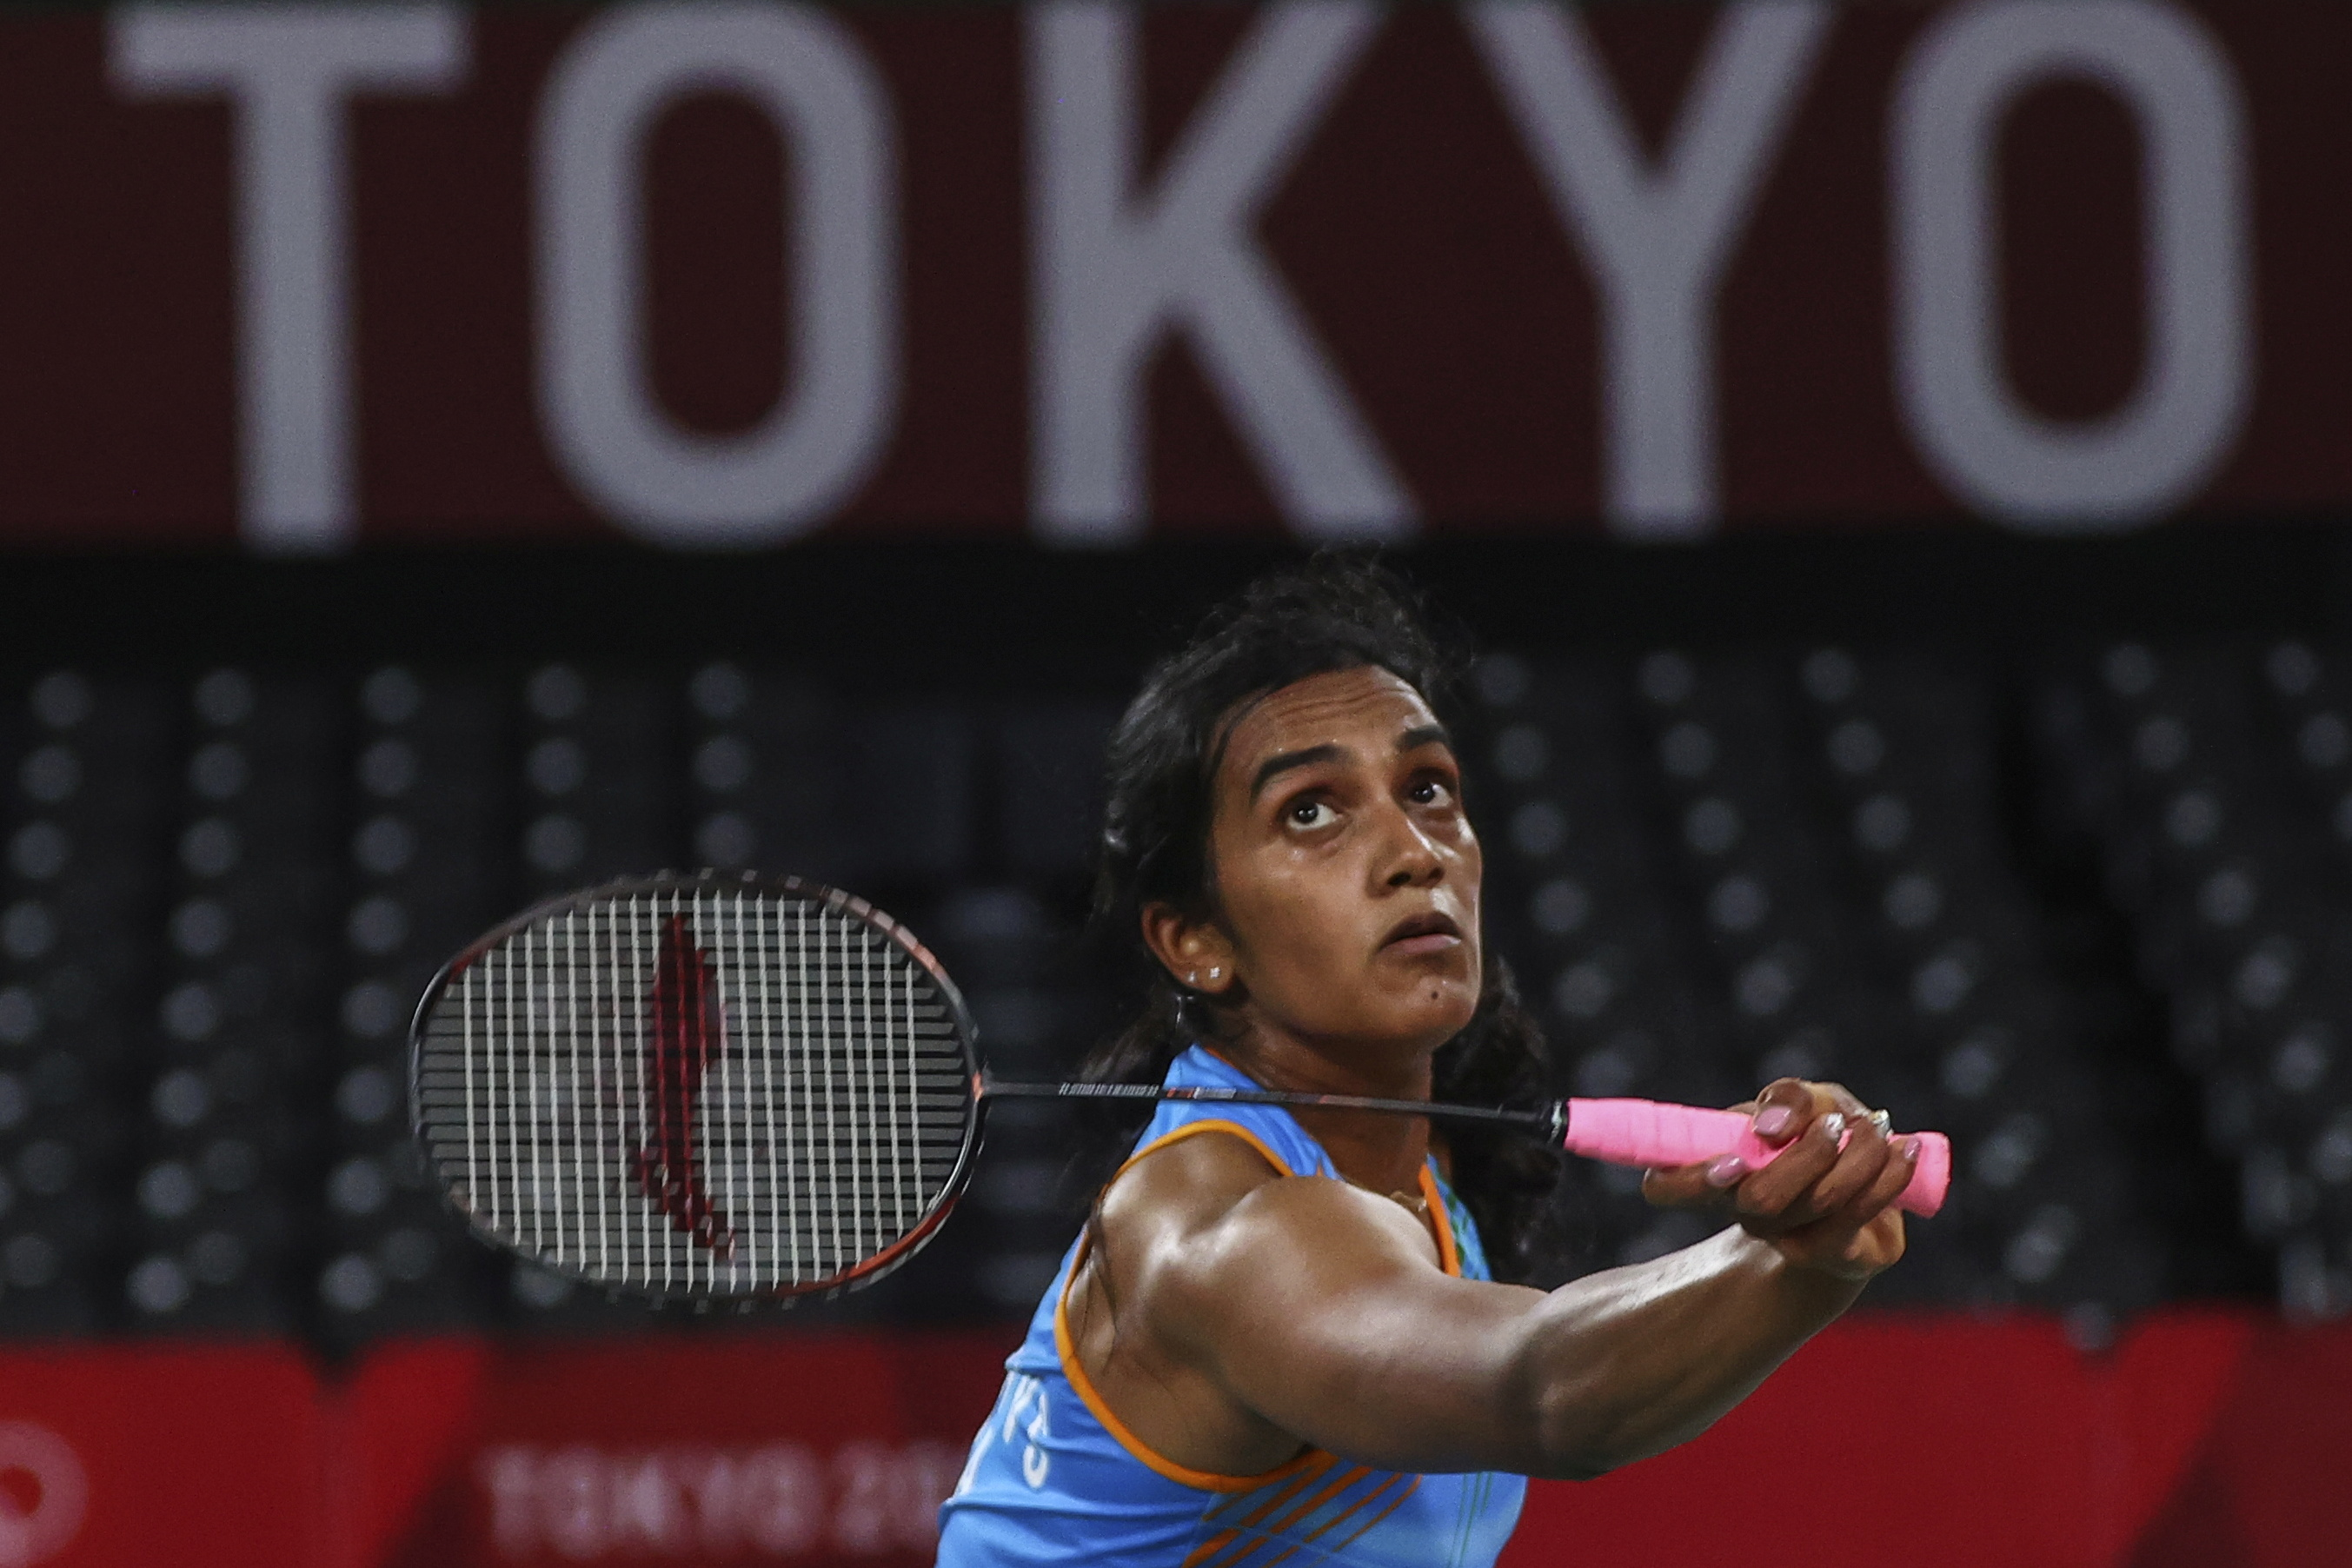 Tokyo 2020 Olympics - Badminton - Women's Singles - Bronze medal match - MFS - Musashino Forest Sport Plaza, Tokyo, Japan – August 1, 2021.  P.V. Sindhu of India in action during the match against He Bingjiao of China. REUTERS/Leonhard Foeger